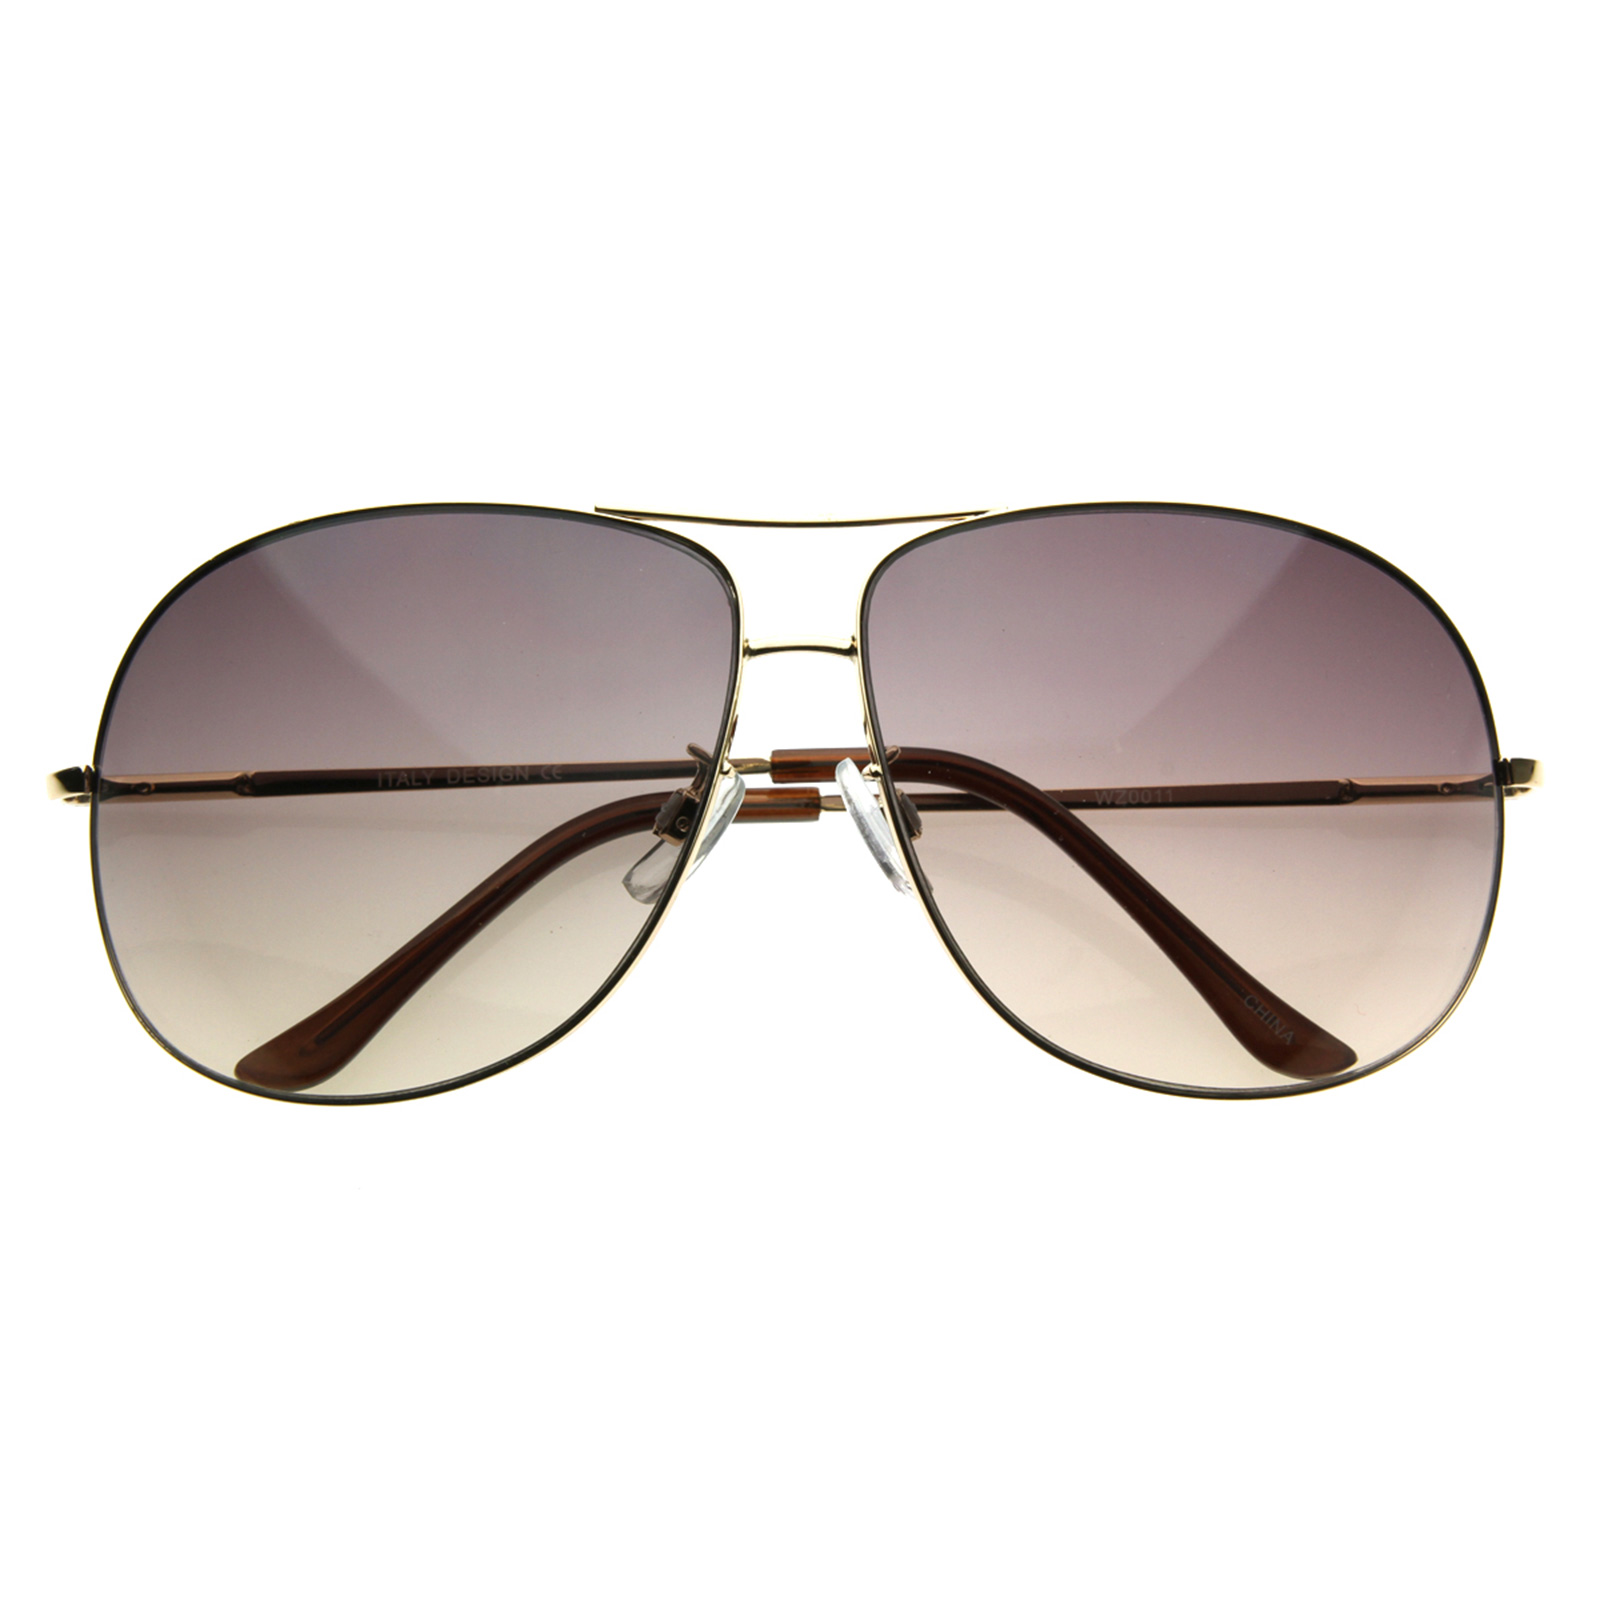 Big Wire Frame Glasses : NEW GQ Formal Large Mens Wire Frame Square Metal Aviator ...